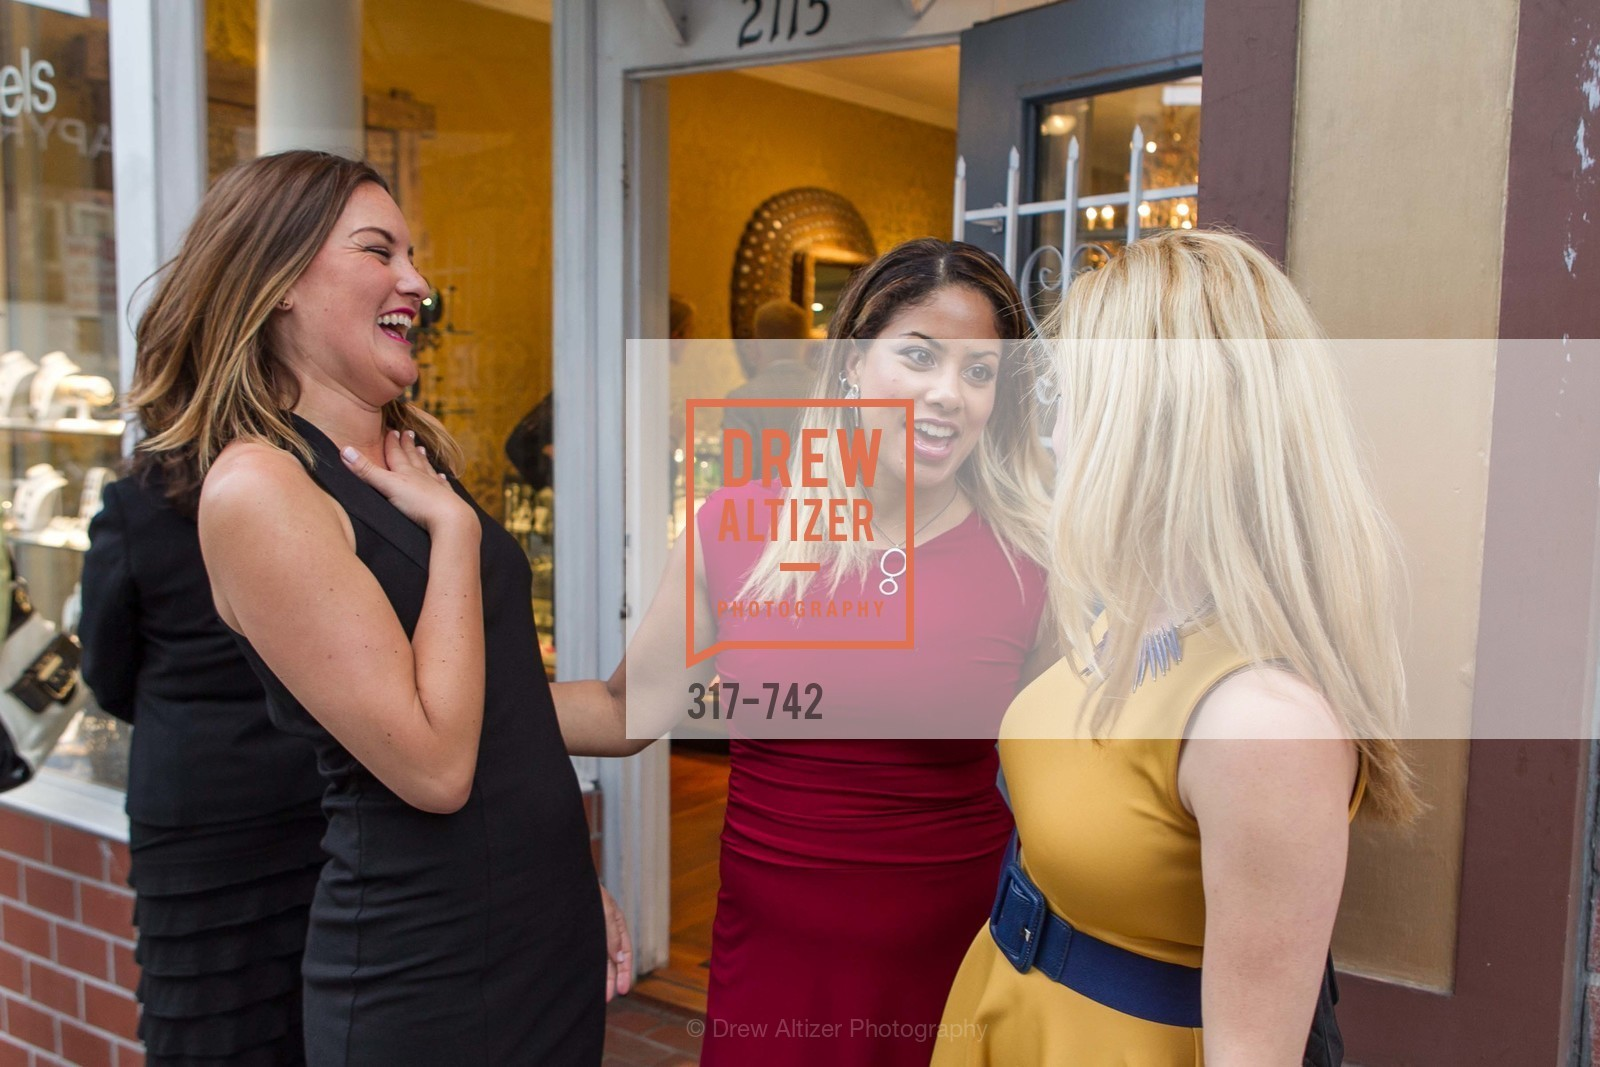 Rena Ramirez, Danielle Shareshian, LUXETIGERS & GALLERY OF JEWELS Benefit for Dress for Success, US, May 21st, 2015,Drew Altizer, Drew Altizer Photography, full-service agency, private events, San Francisco photographer, photographer california